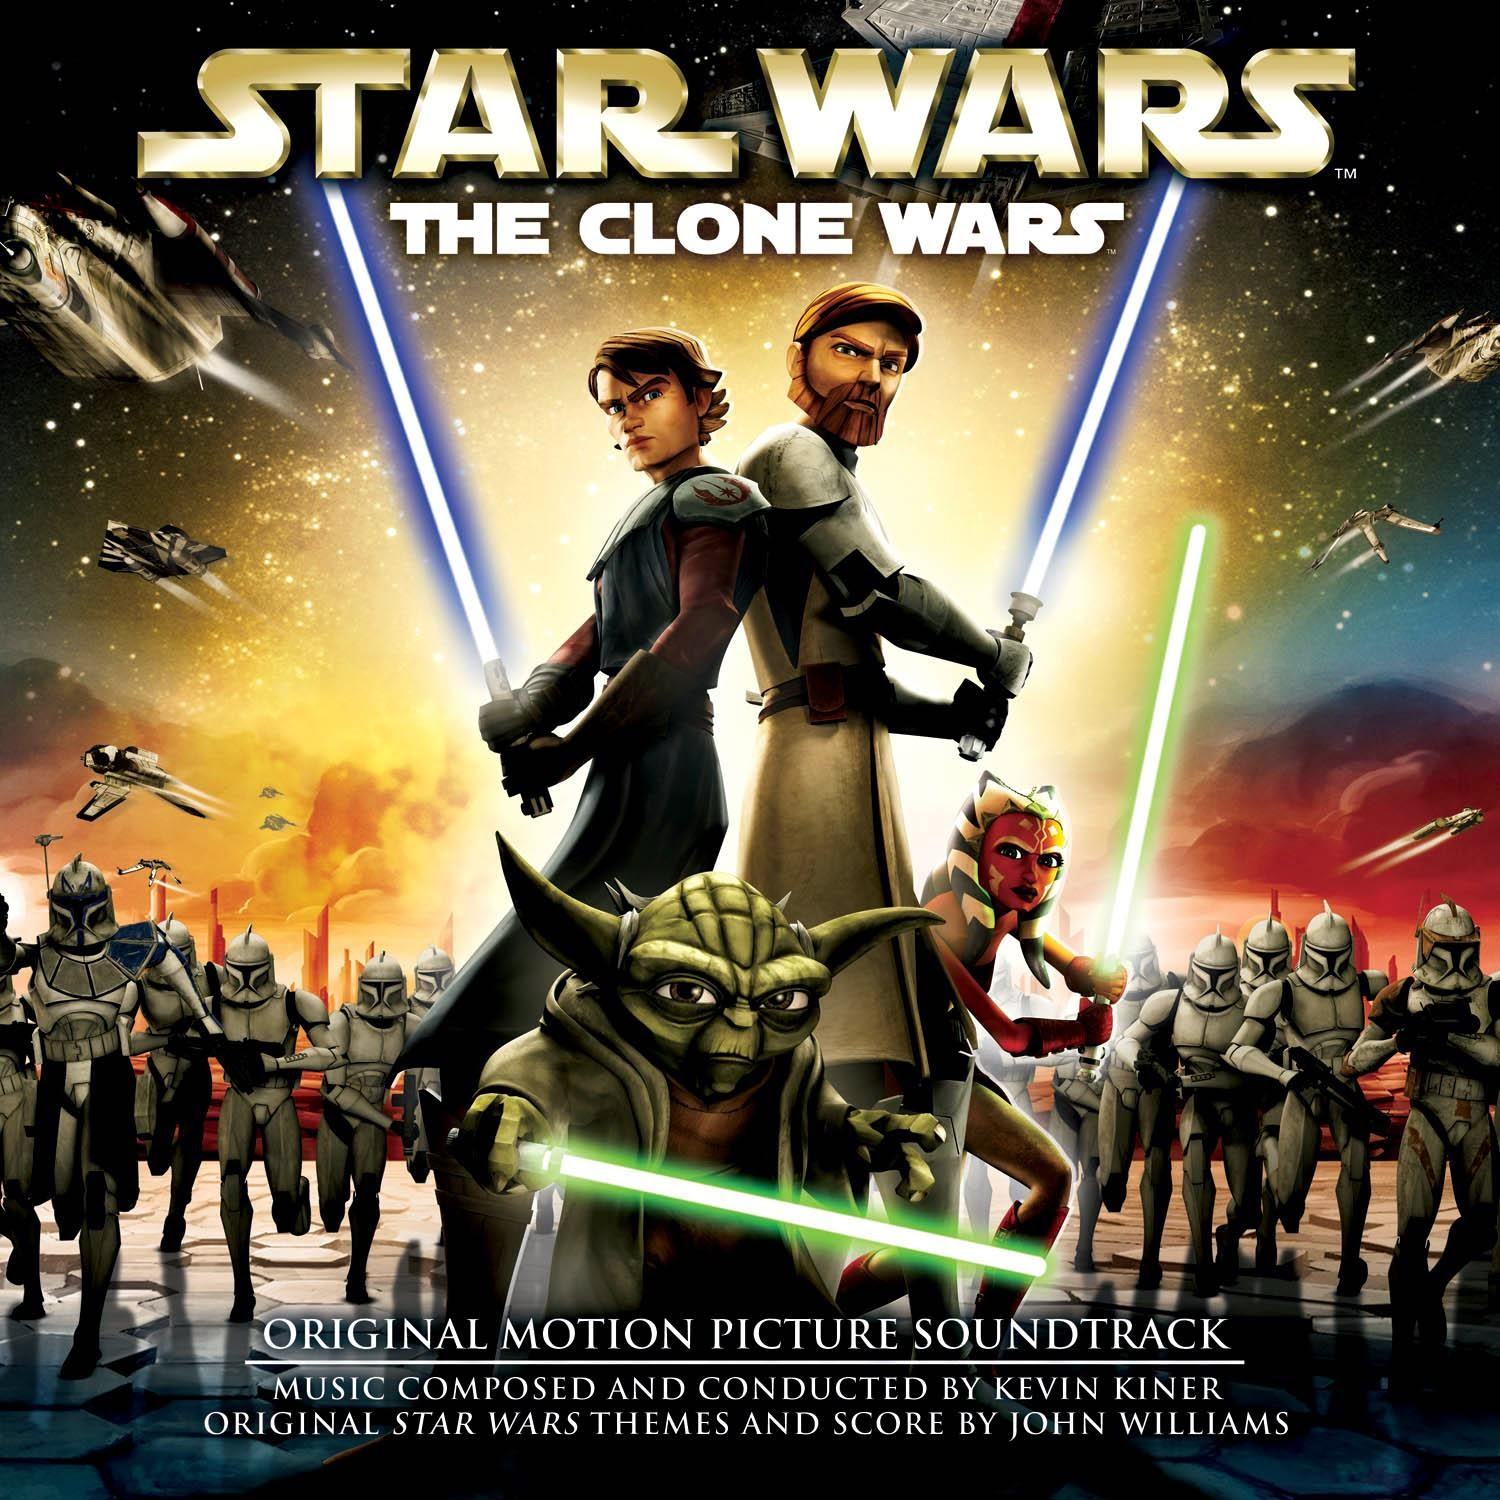 star wars the clone wars movie stream